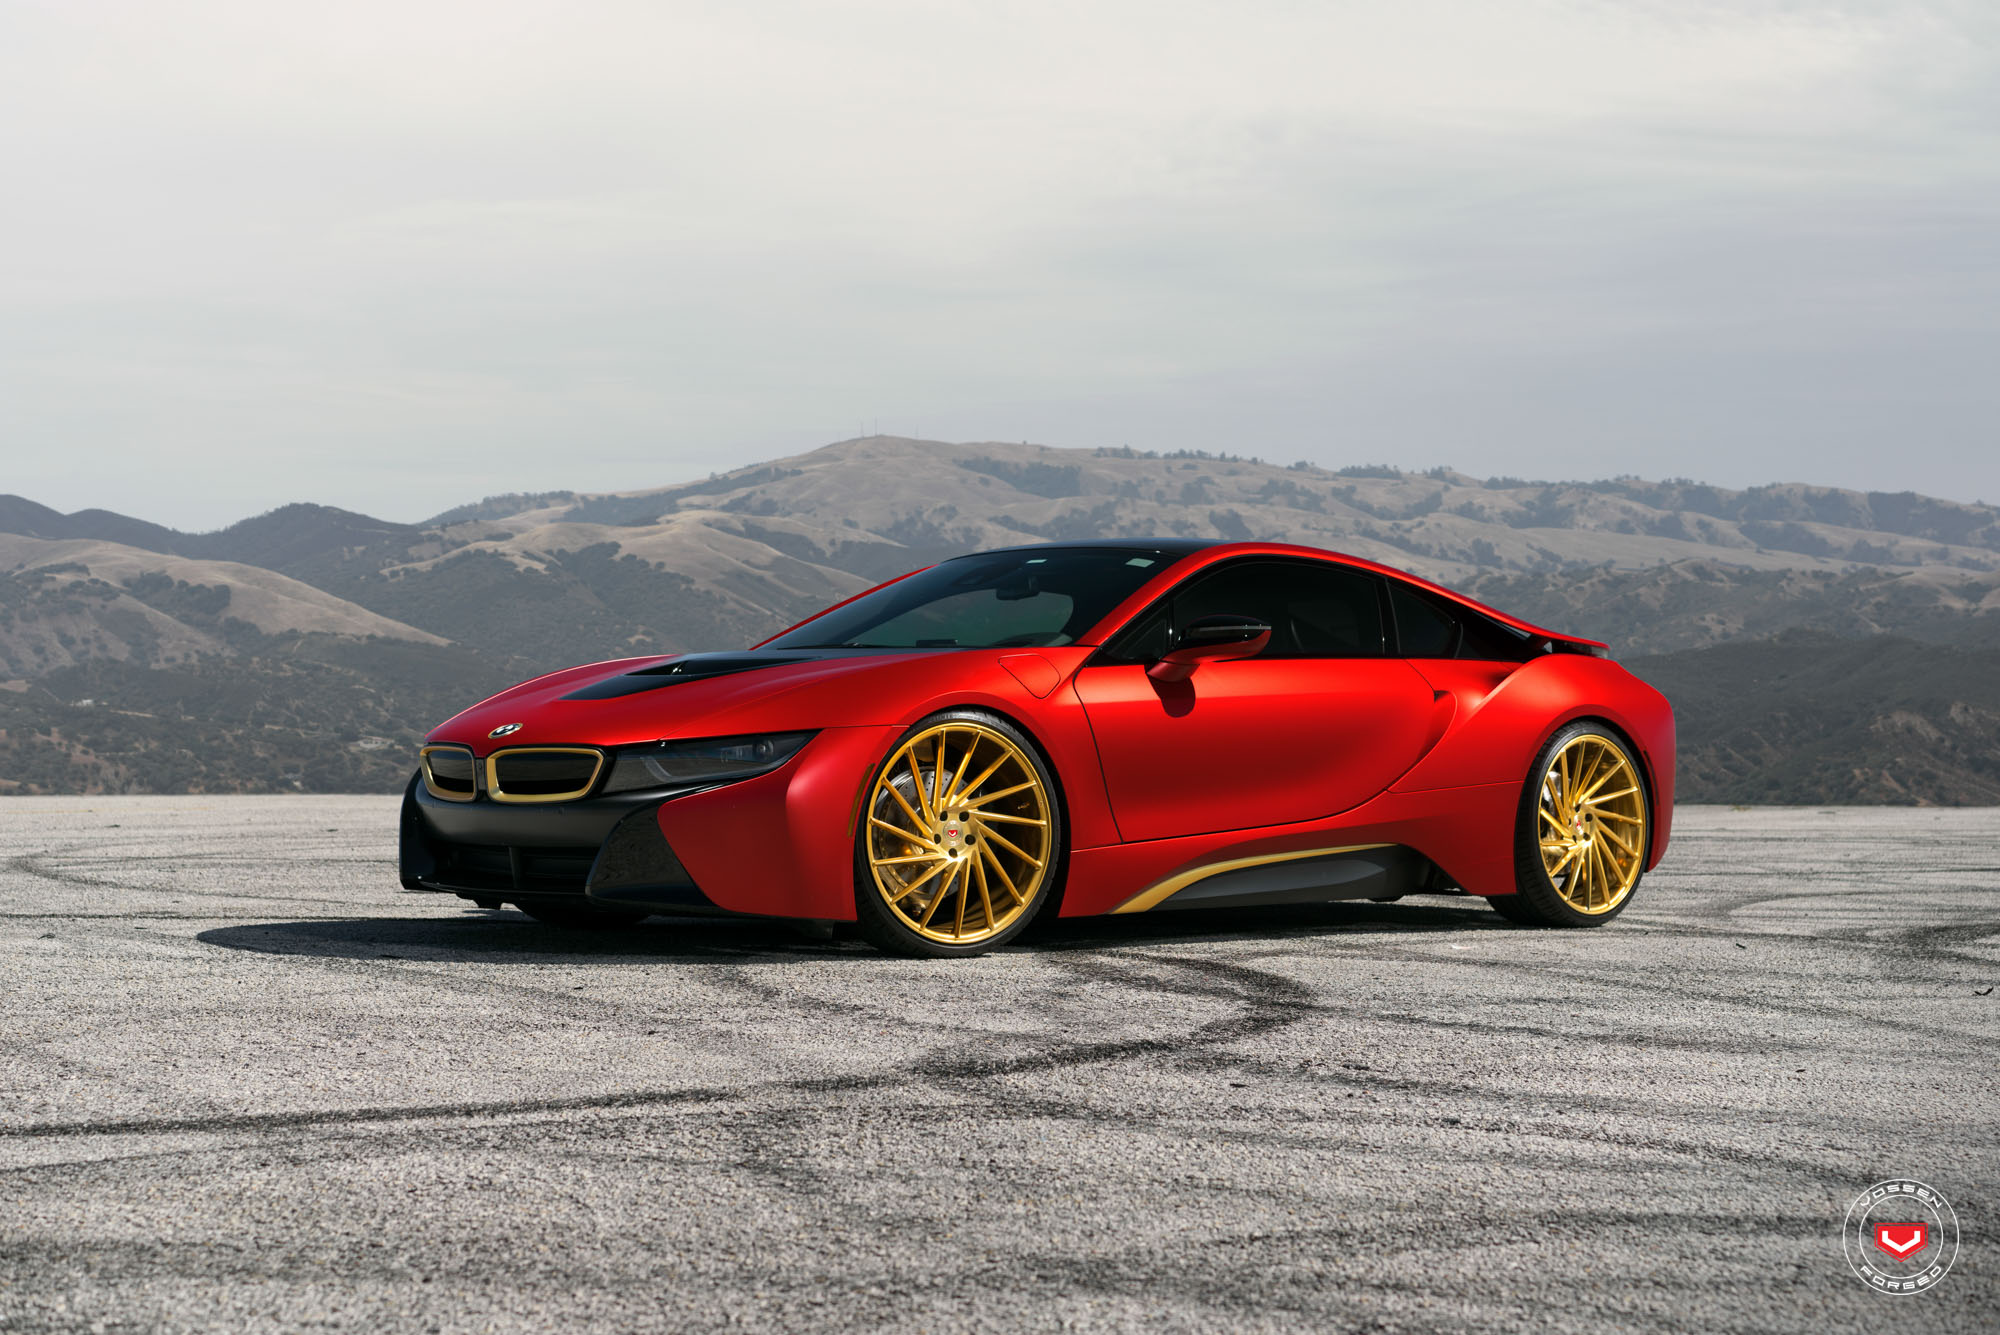 Austin Mahone S Iron Man Bmw I8 Makes More Sense Than The Audi R8 107245 on audi cabriolet